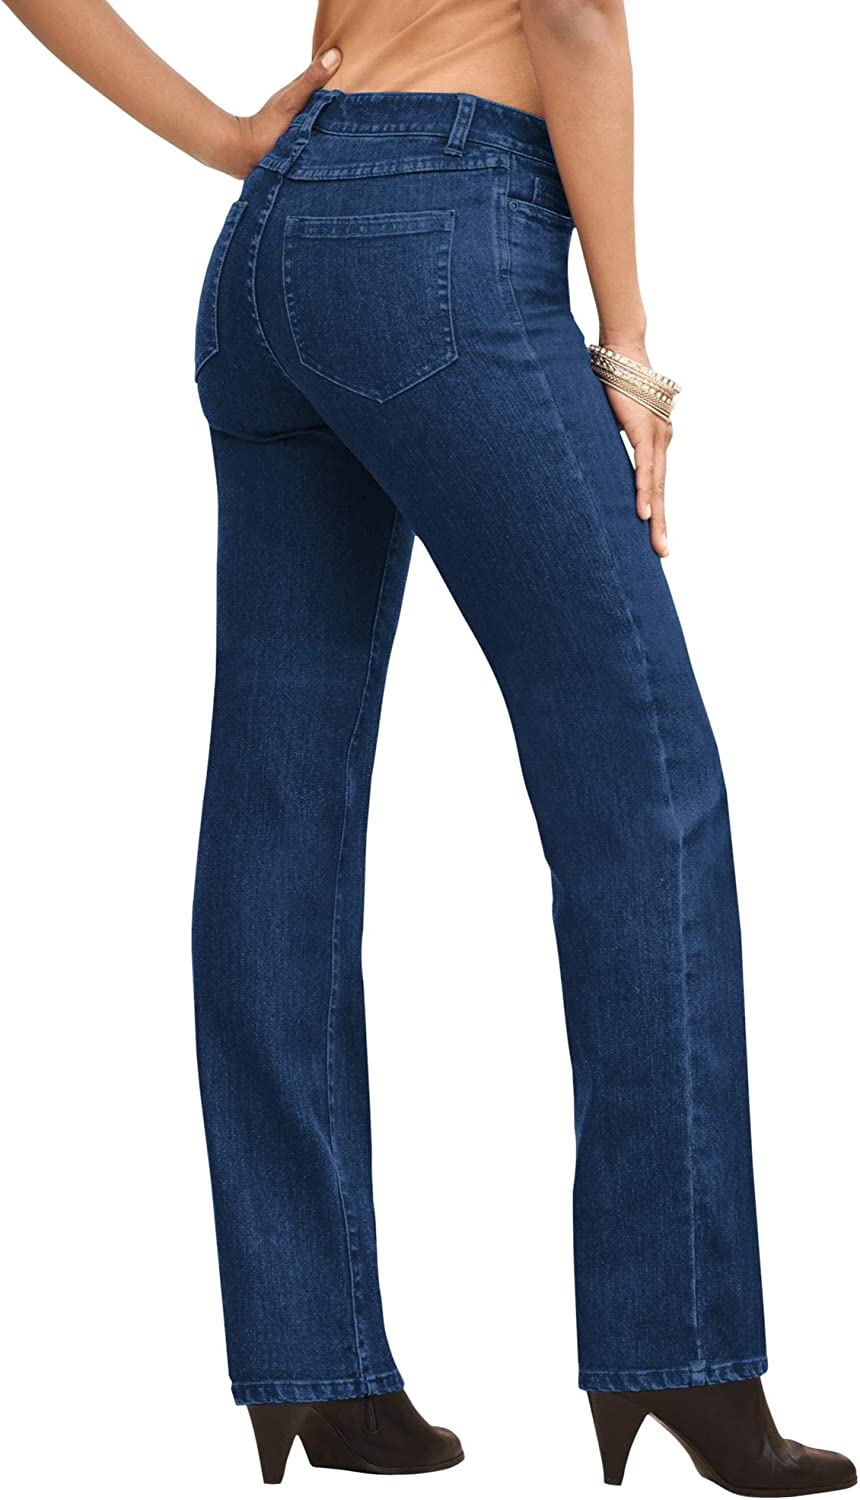 Roamans Women's Plus Size Embellished Free Popular brand in the world shipping Inv with Jean Straight-Leg